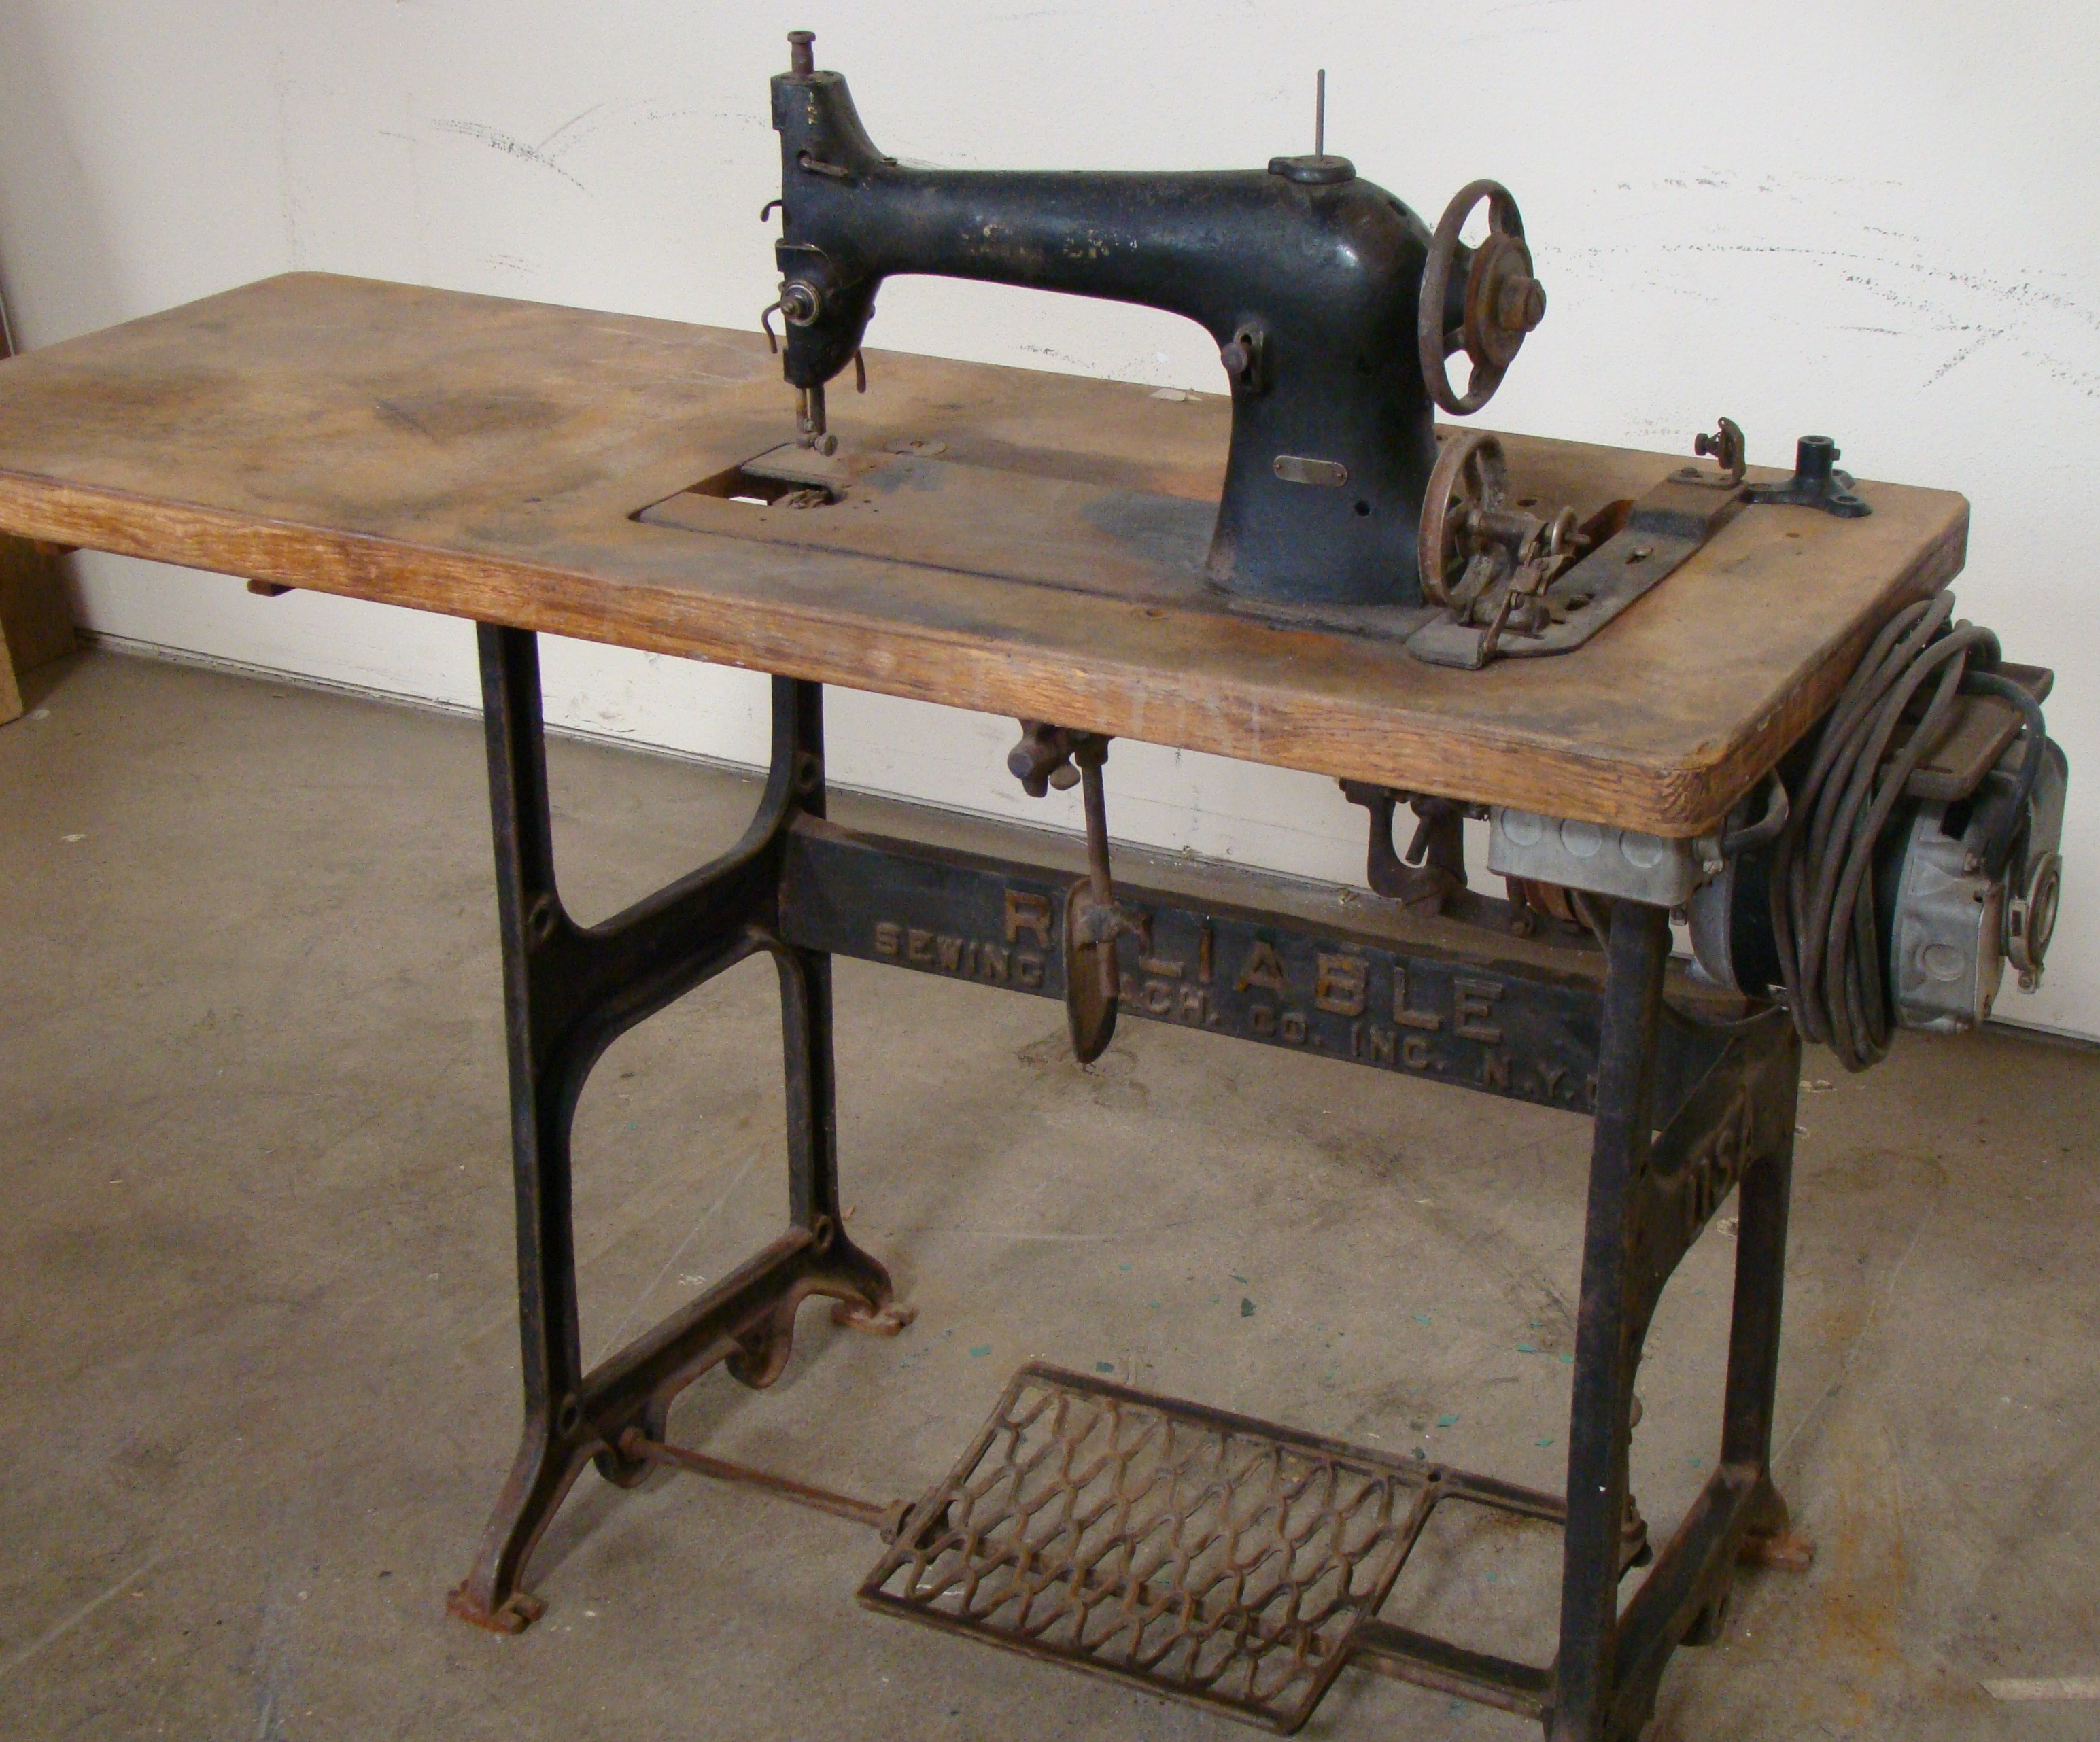 Lot 50 - Singer Antique Sewing Machine 115 Volt